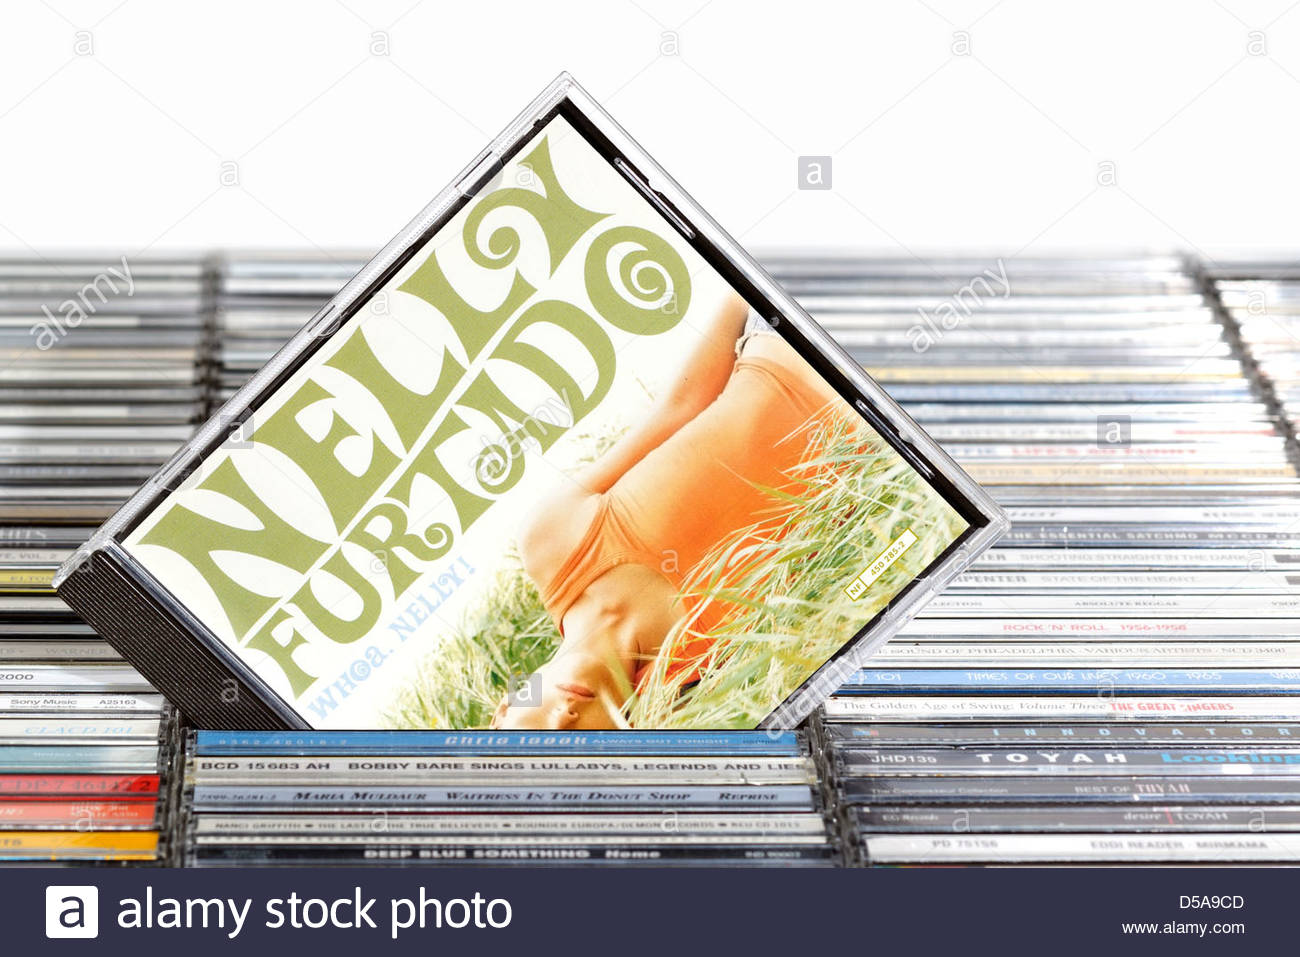 Nelly Furtado album, Whoa Nelly piled music CD cases, England. Stock Photo